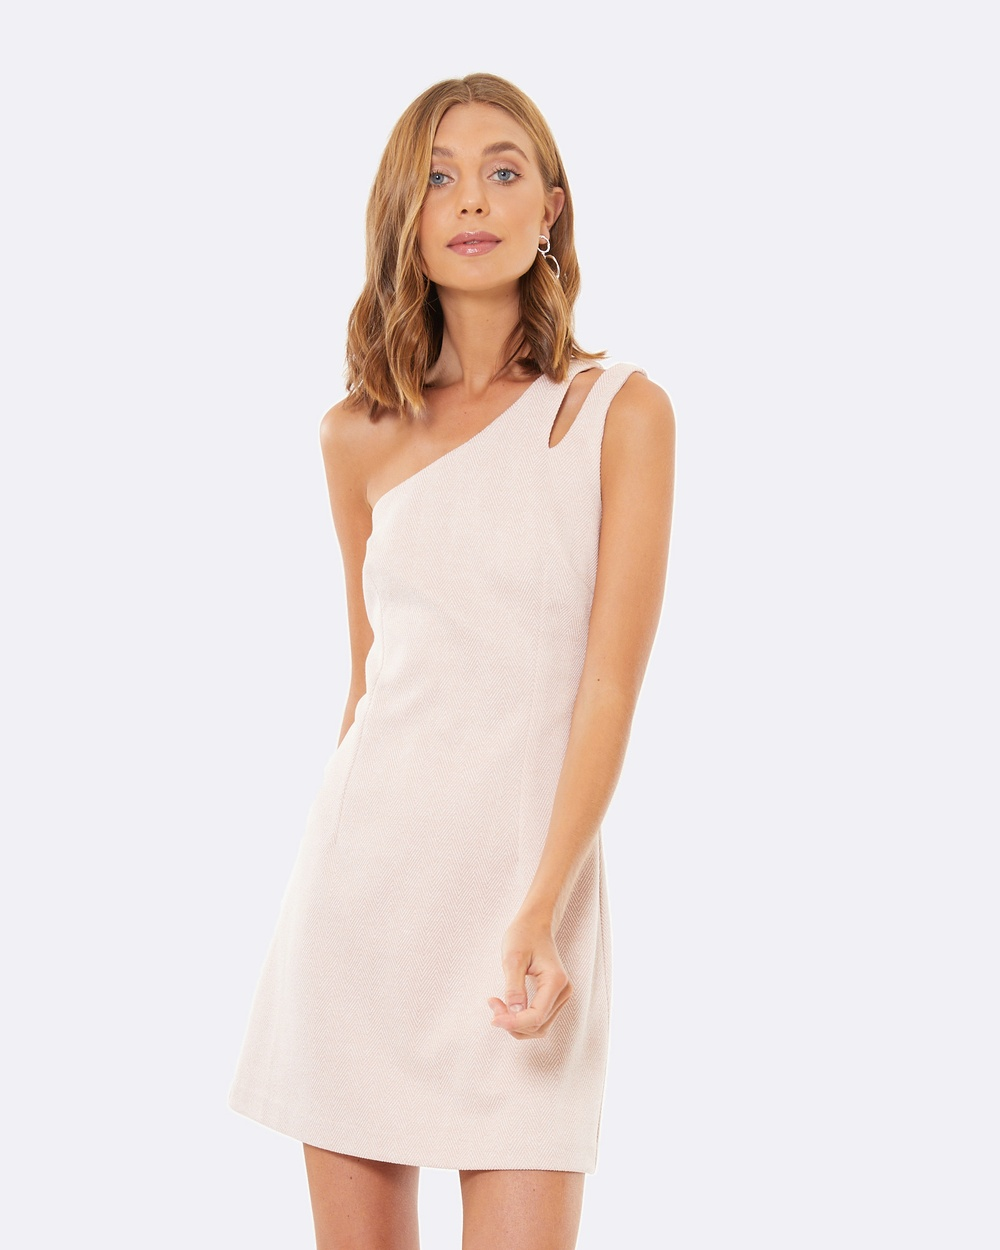 Calli Zana Shoulder Split Dress Dresses Pink Zana Shoulder-Split Dress